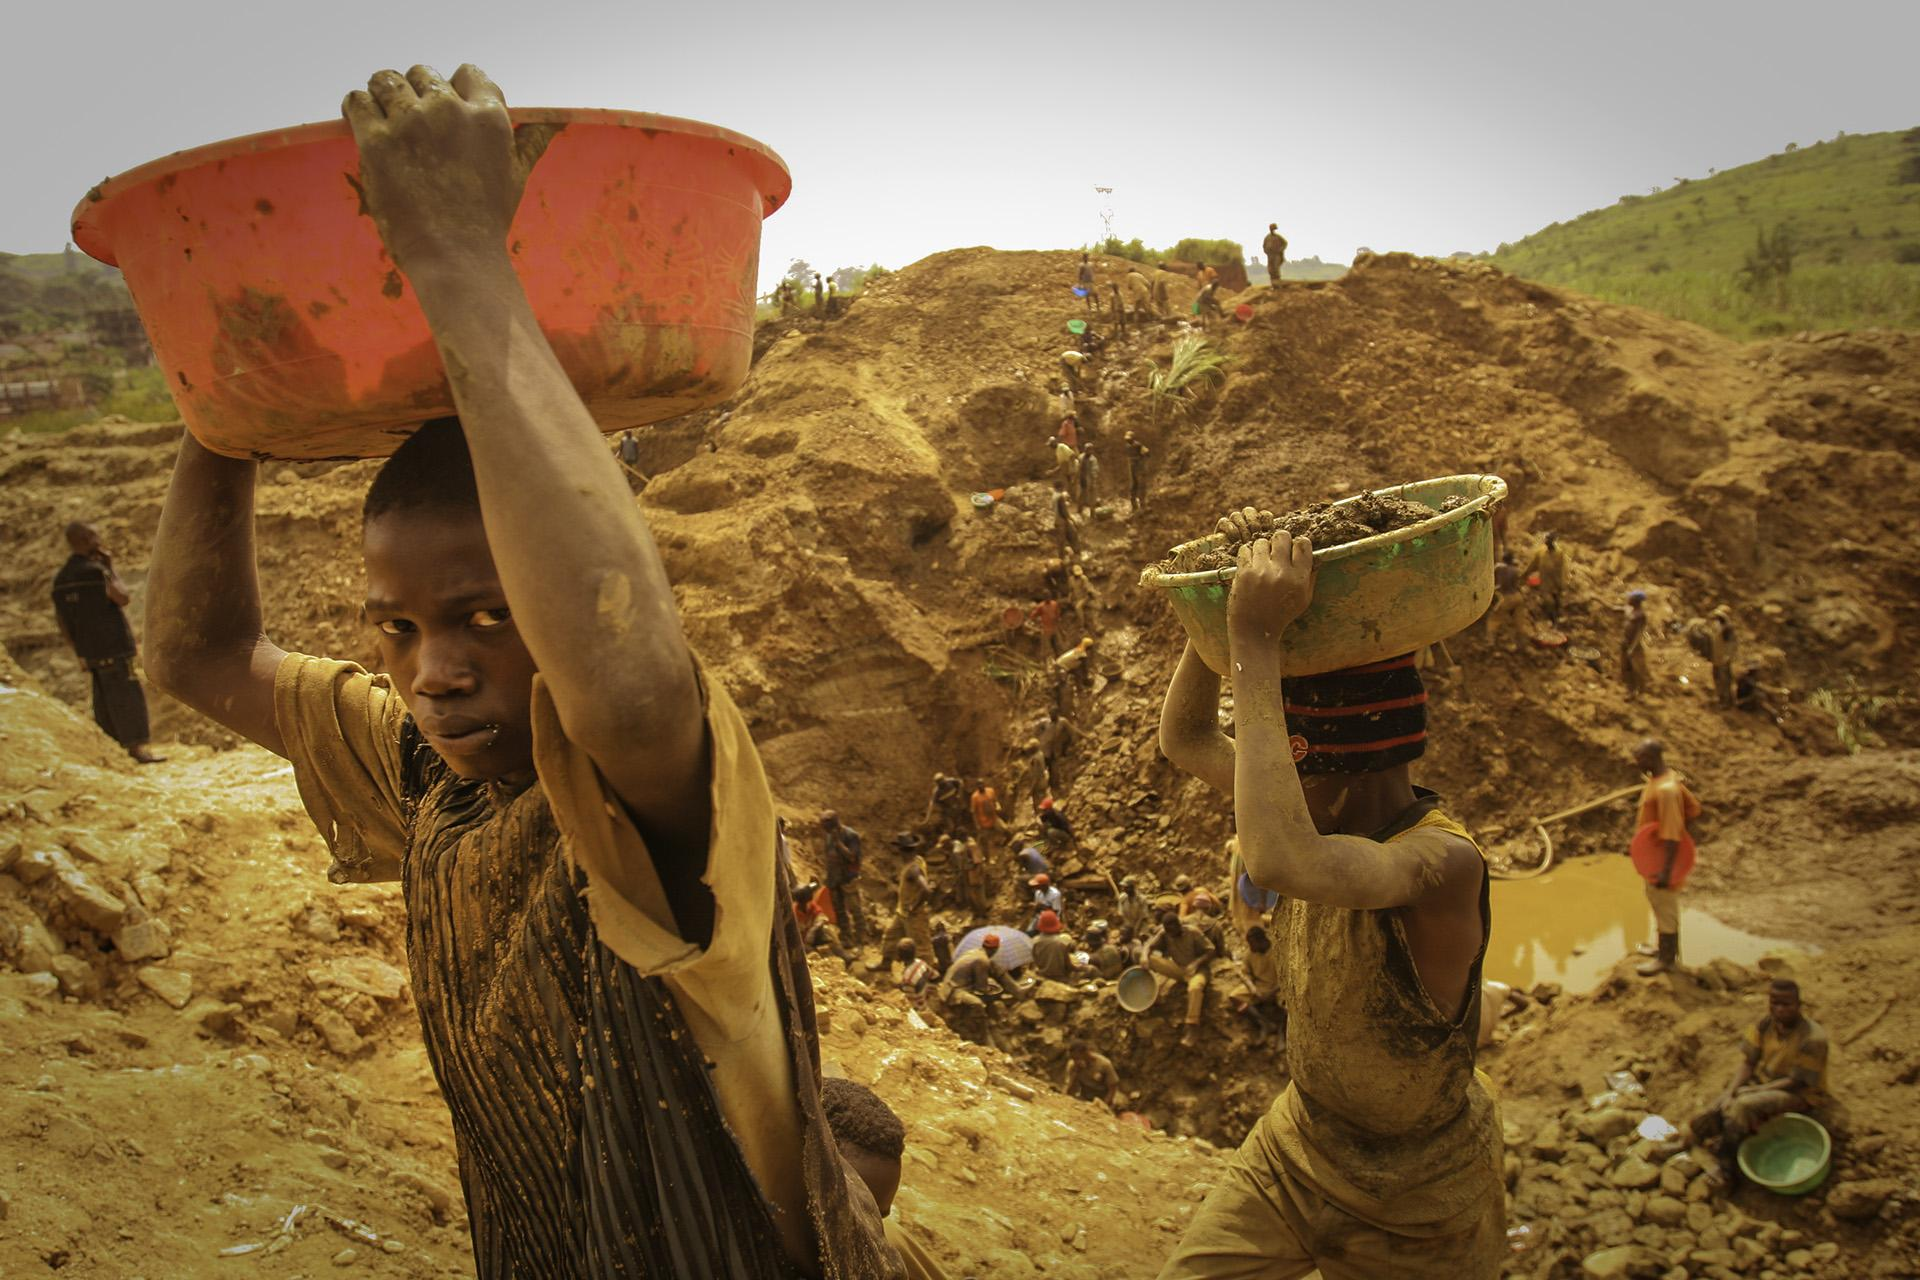 Many working at the gold mines in Ituri are children.